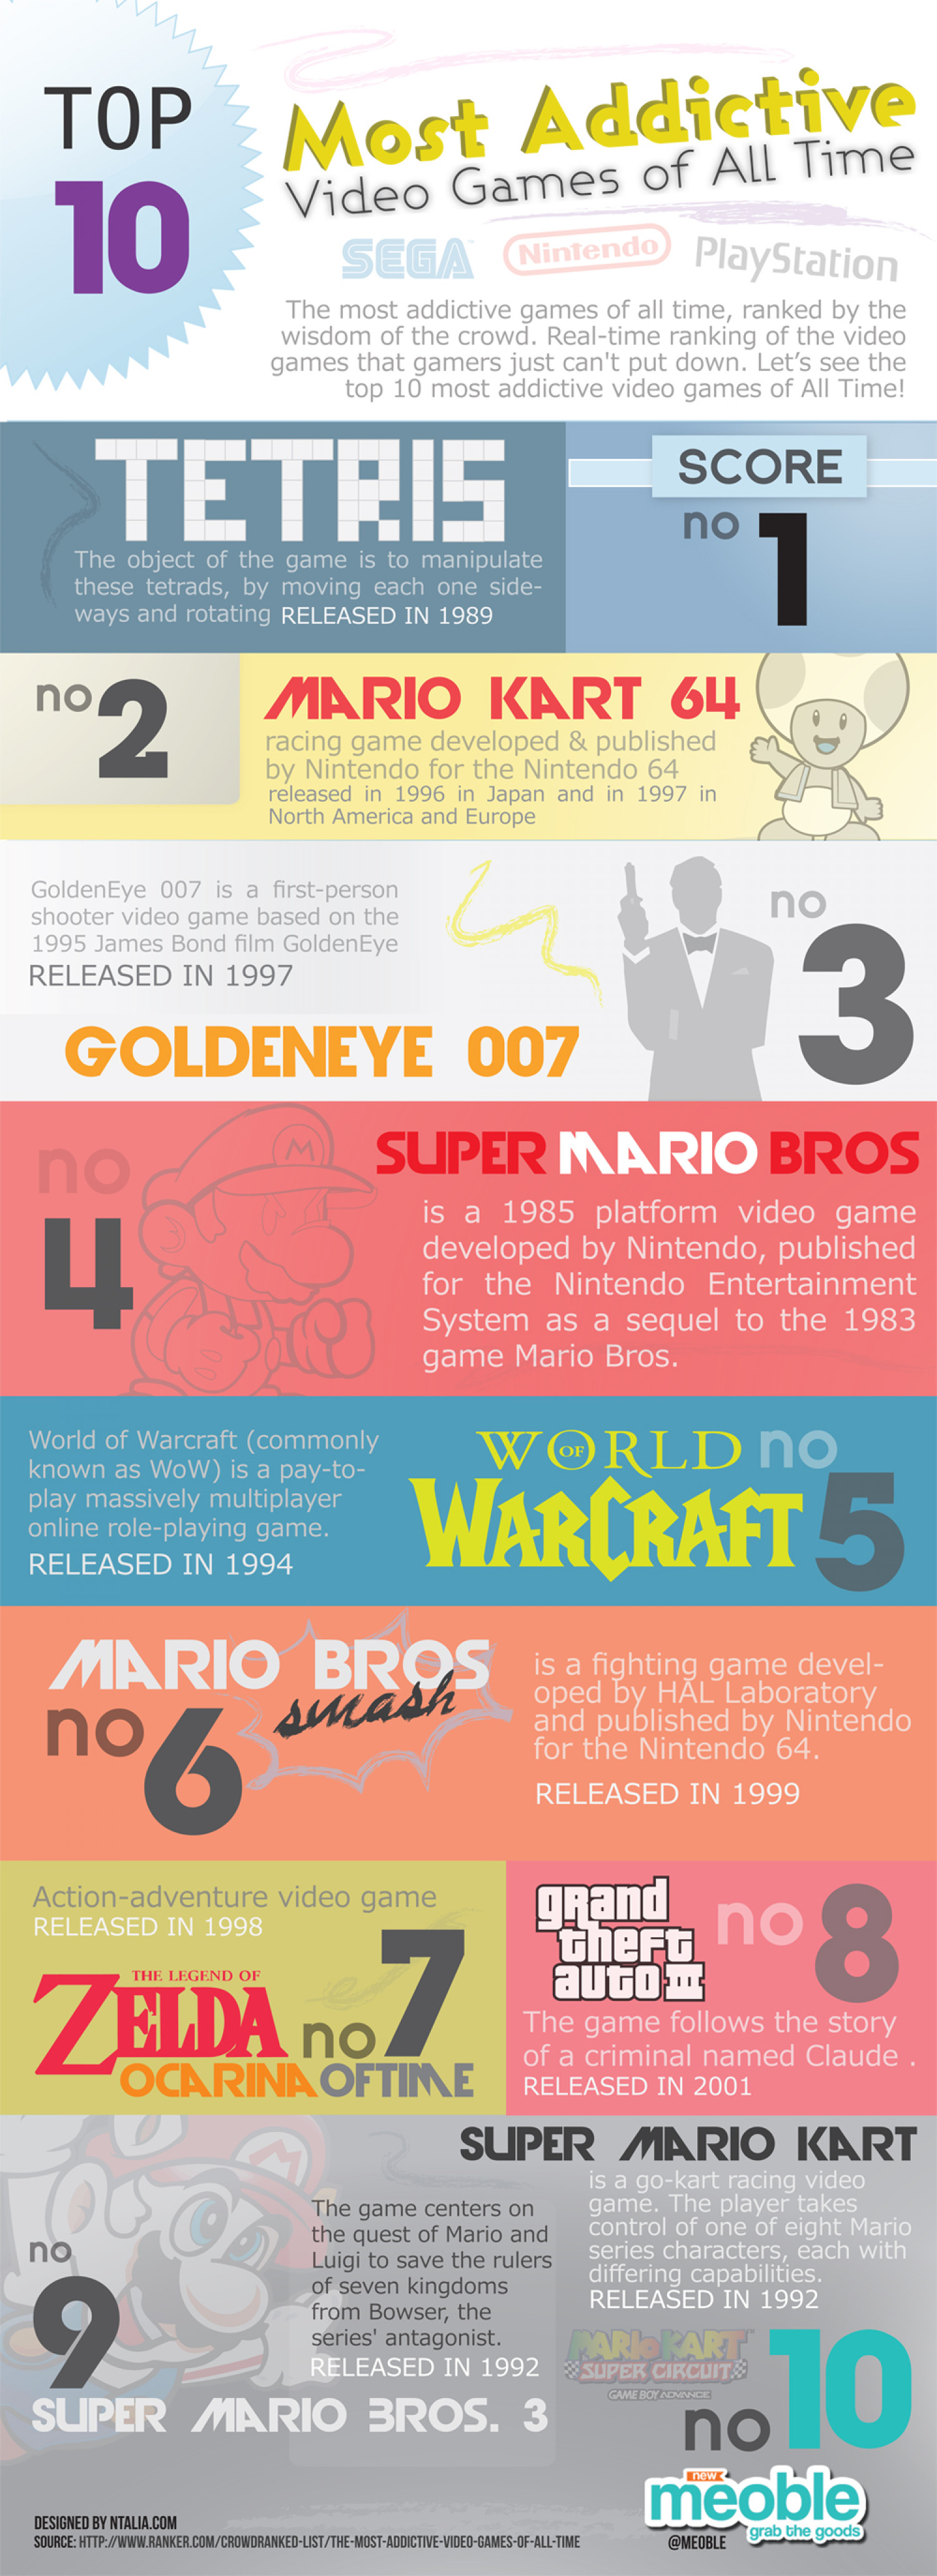 Top 10 Most Addictive Video Games of All Time Infographic